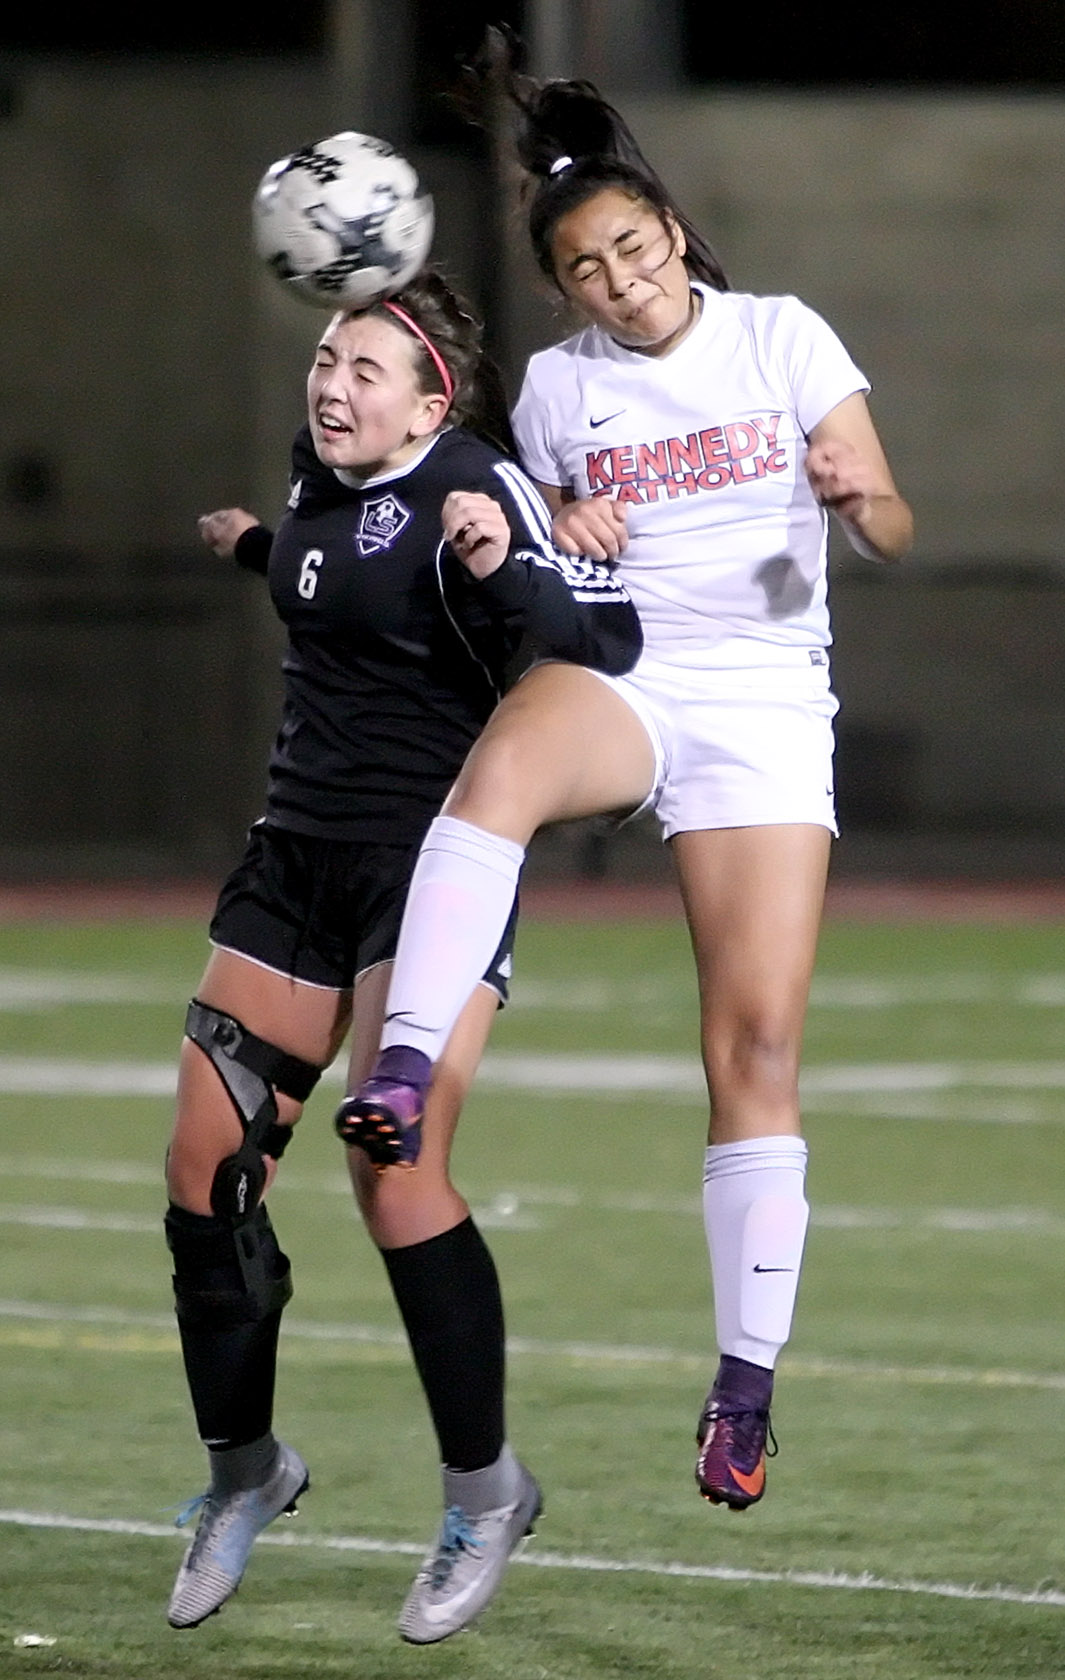 Sam Foly of Lake Stevens and Kennedy Catholics Julie Trejo-Lamphere go for a header.